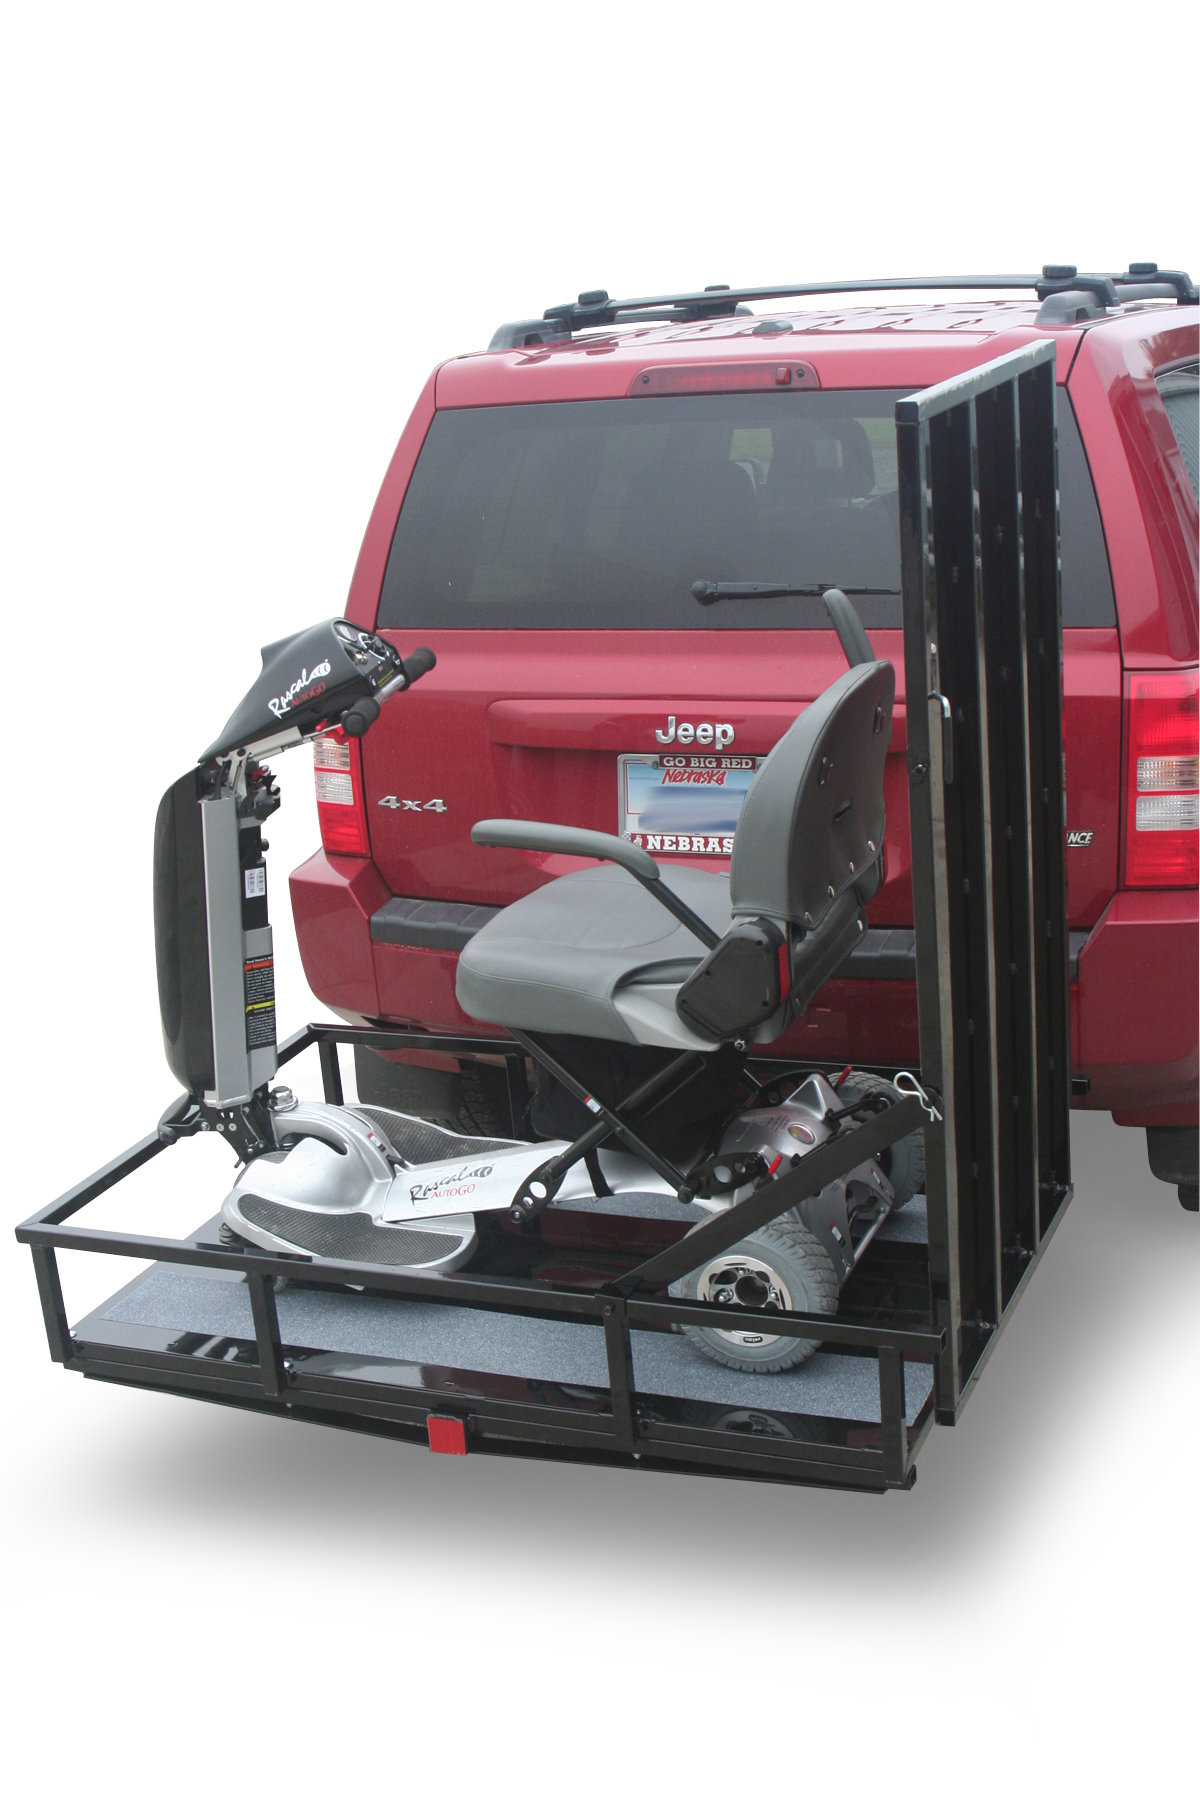 wheelchair hauler bubble chair swing stand ramps aging in my place power hitch carriers